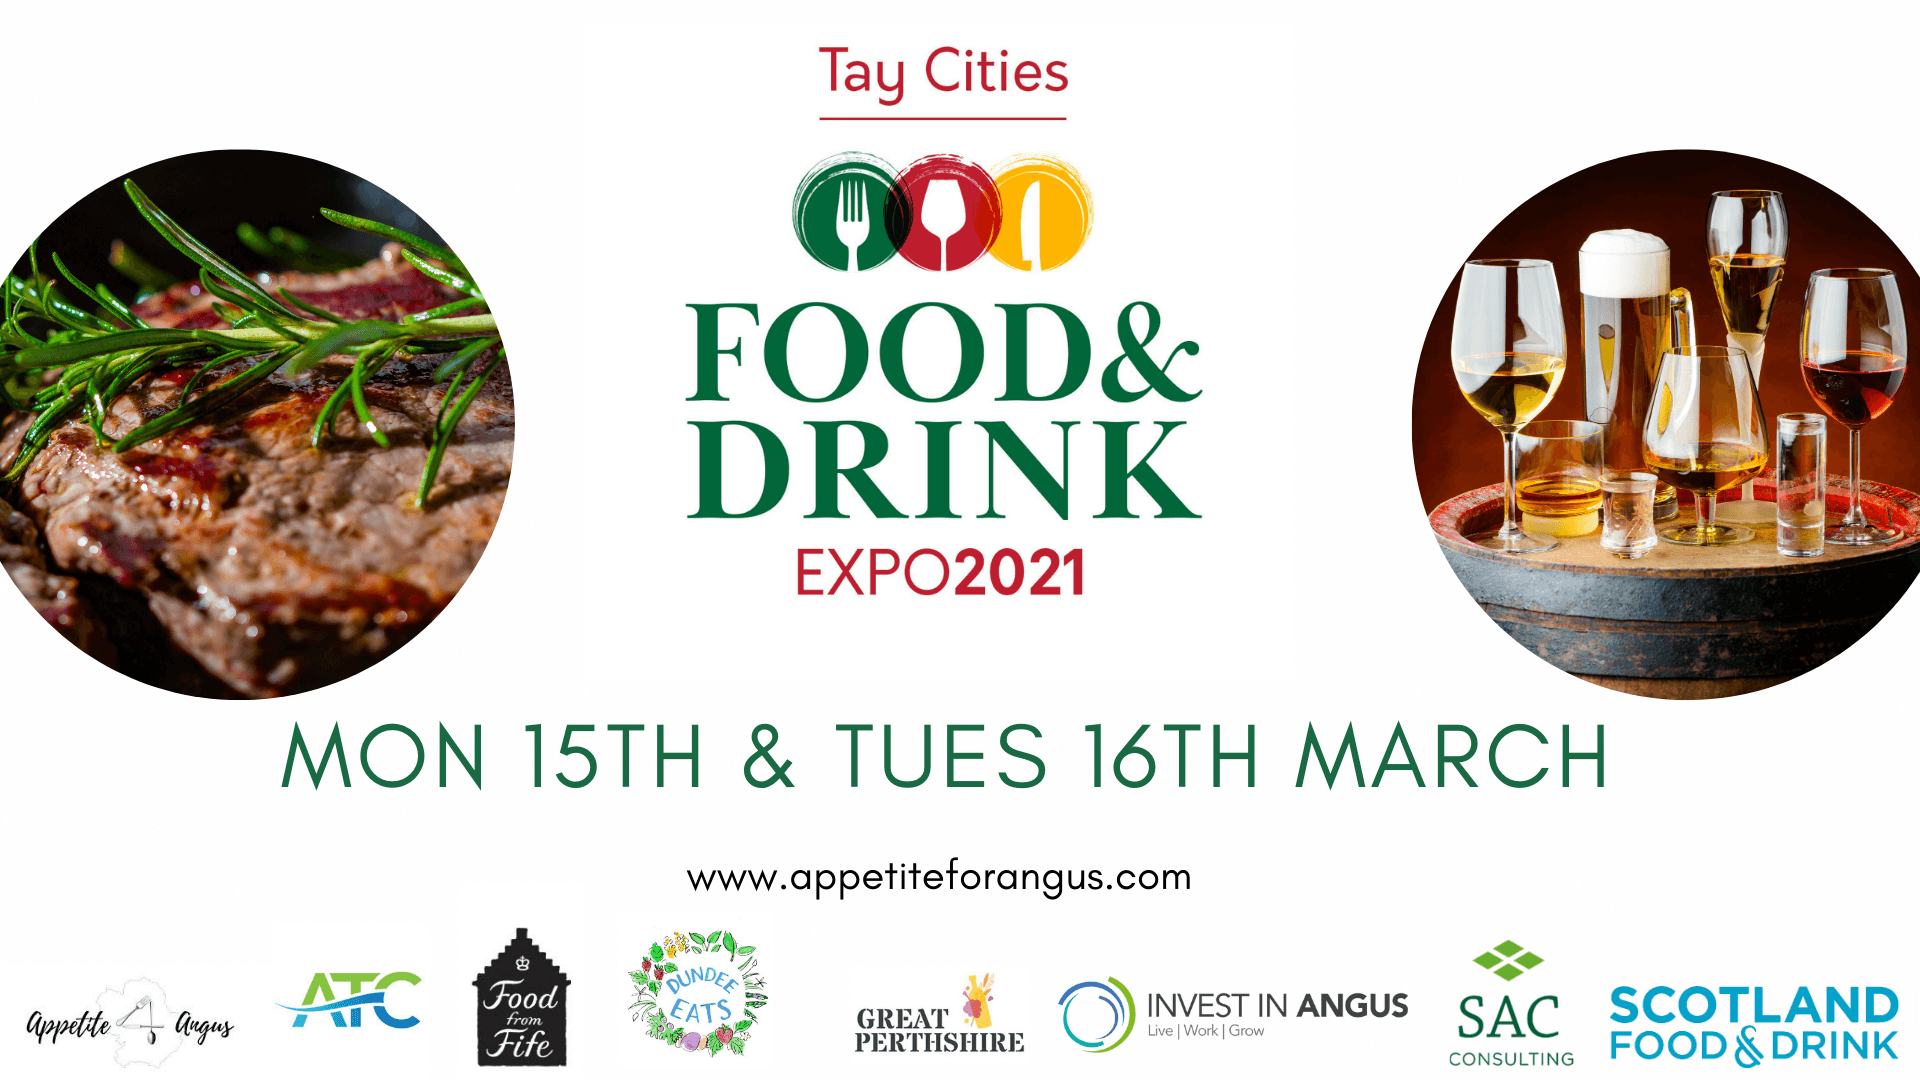 Tay Cities Food & Drink Expo 2021